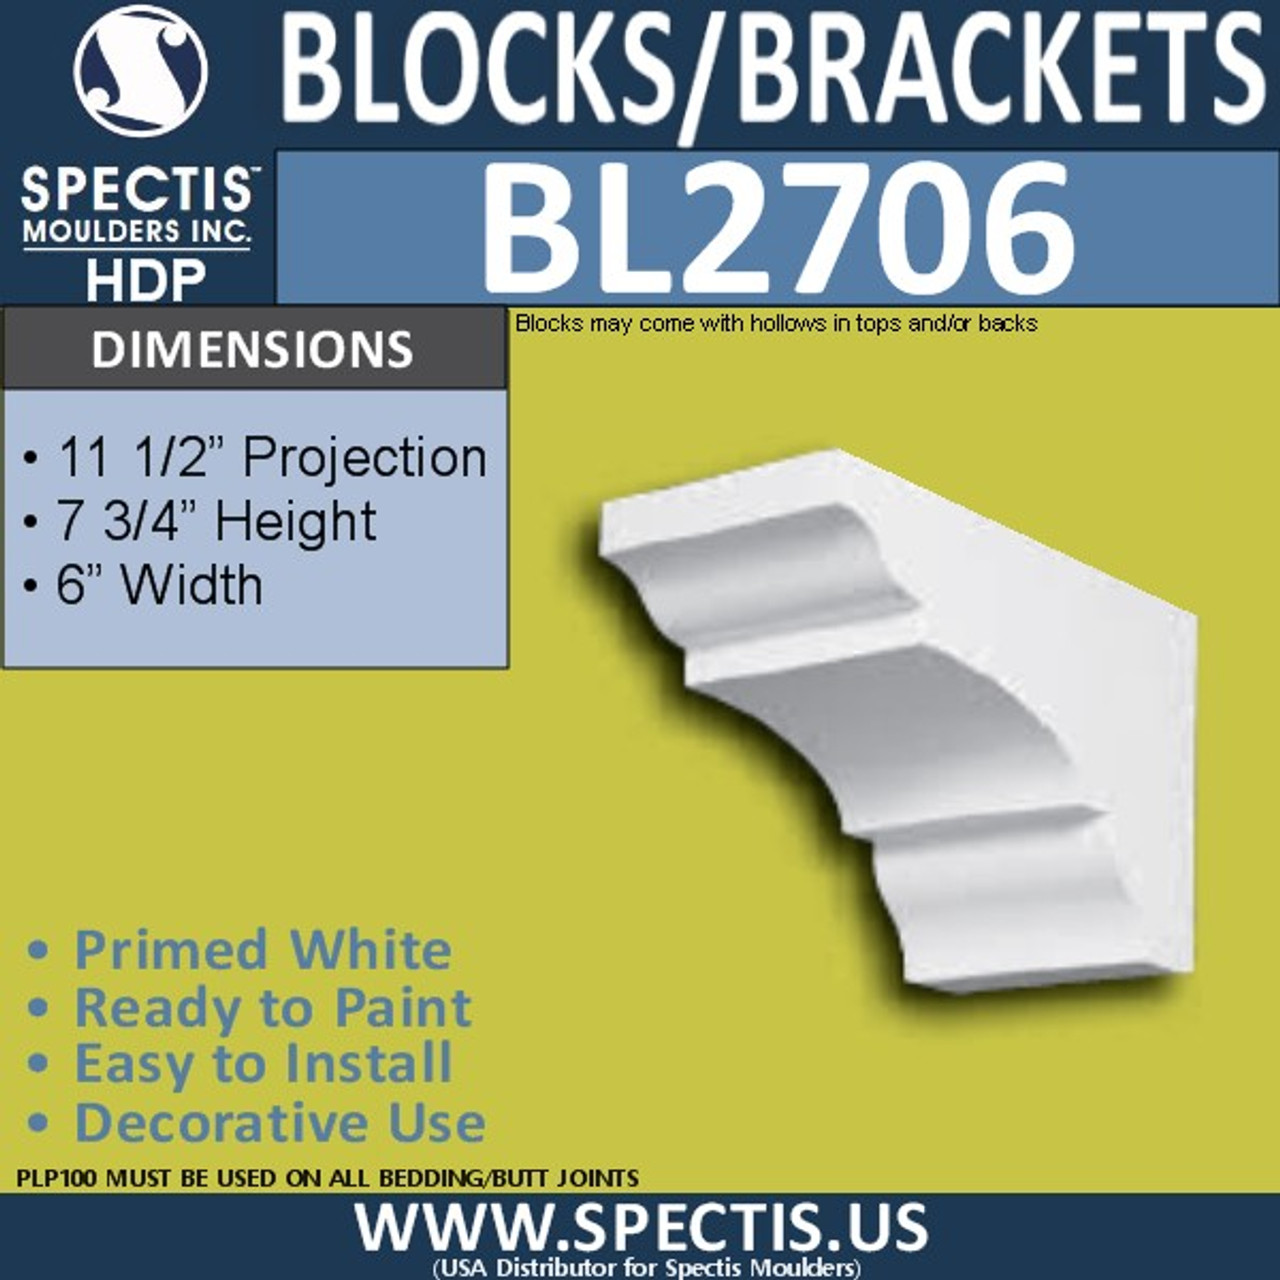 "BL2706 Eave Block or Bracket 6""W x 4""H x 4"" P"